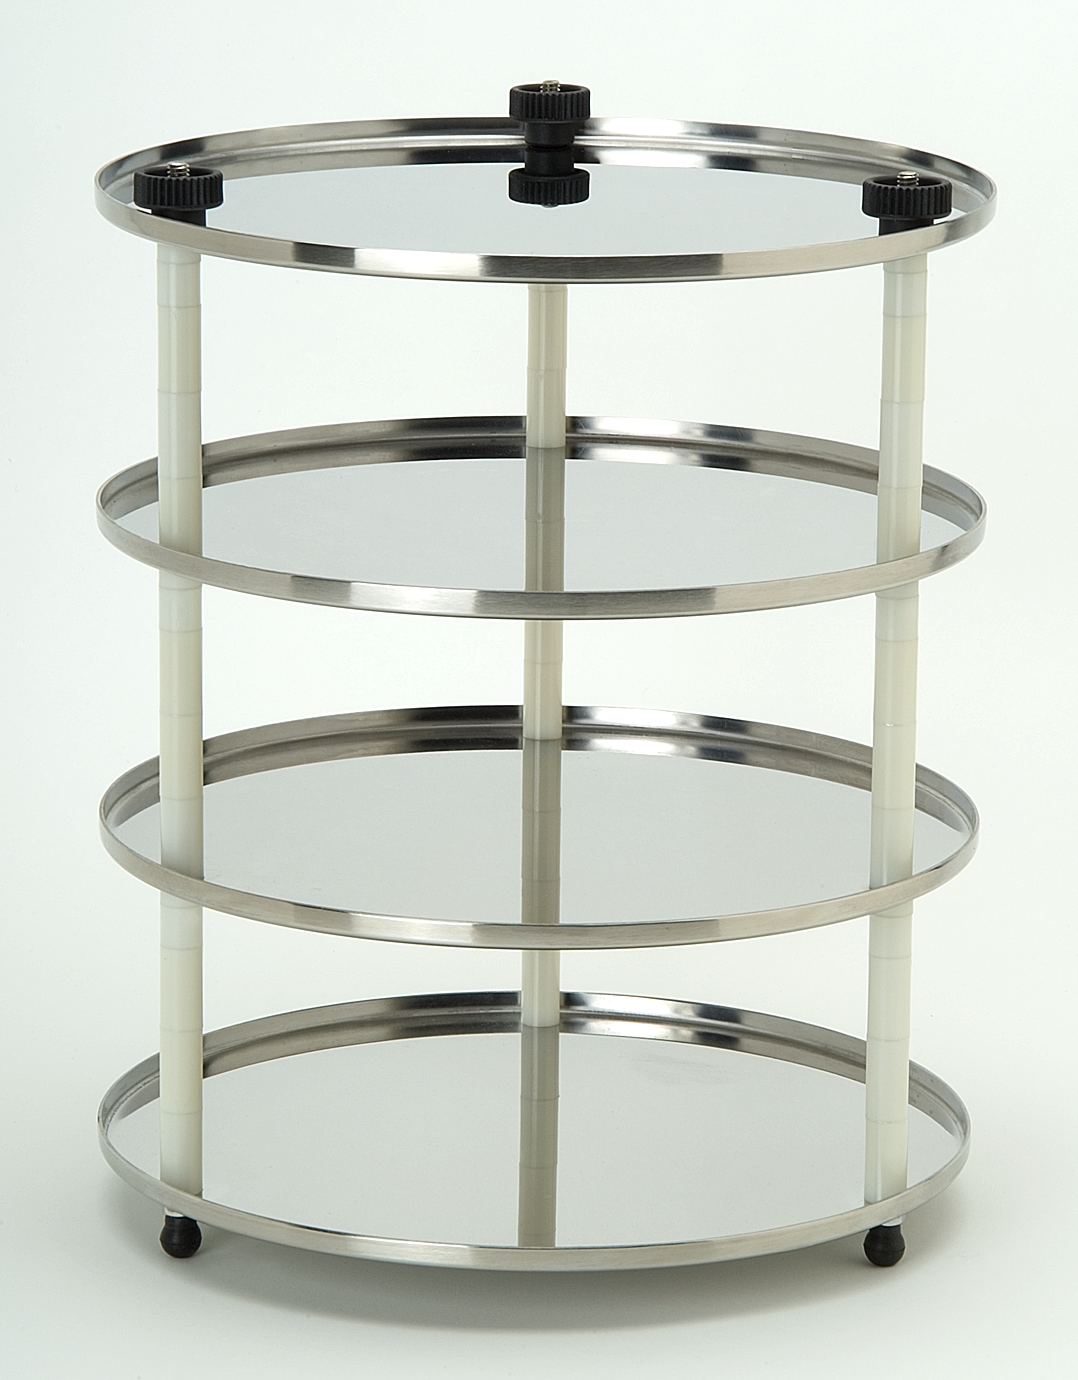 Bulk Shelf Rack (Heated or Unheated)